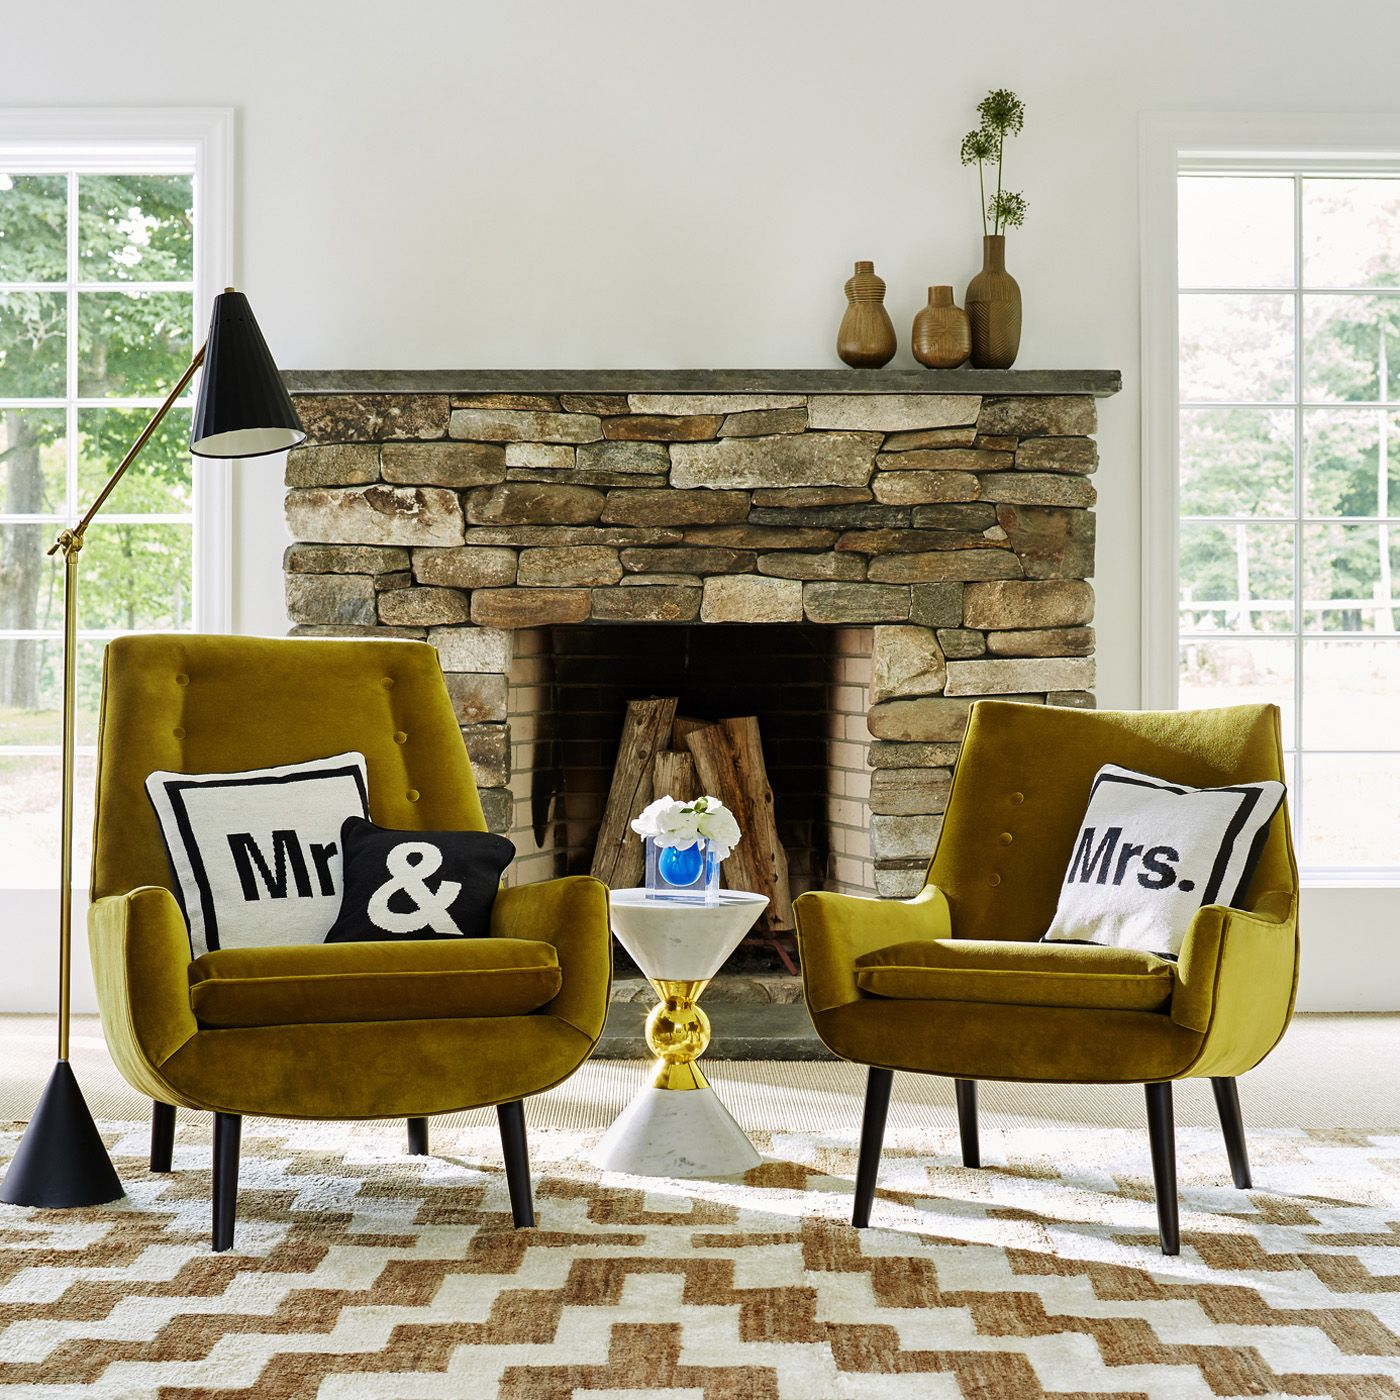 Attractive 25 Bold Living Room Chairs You Will Want This Spring | Modern Chairs.  Velvet Chair. Chair Design. #modernchairs #velvetchair #armchairs Read  More: ...